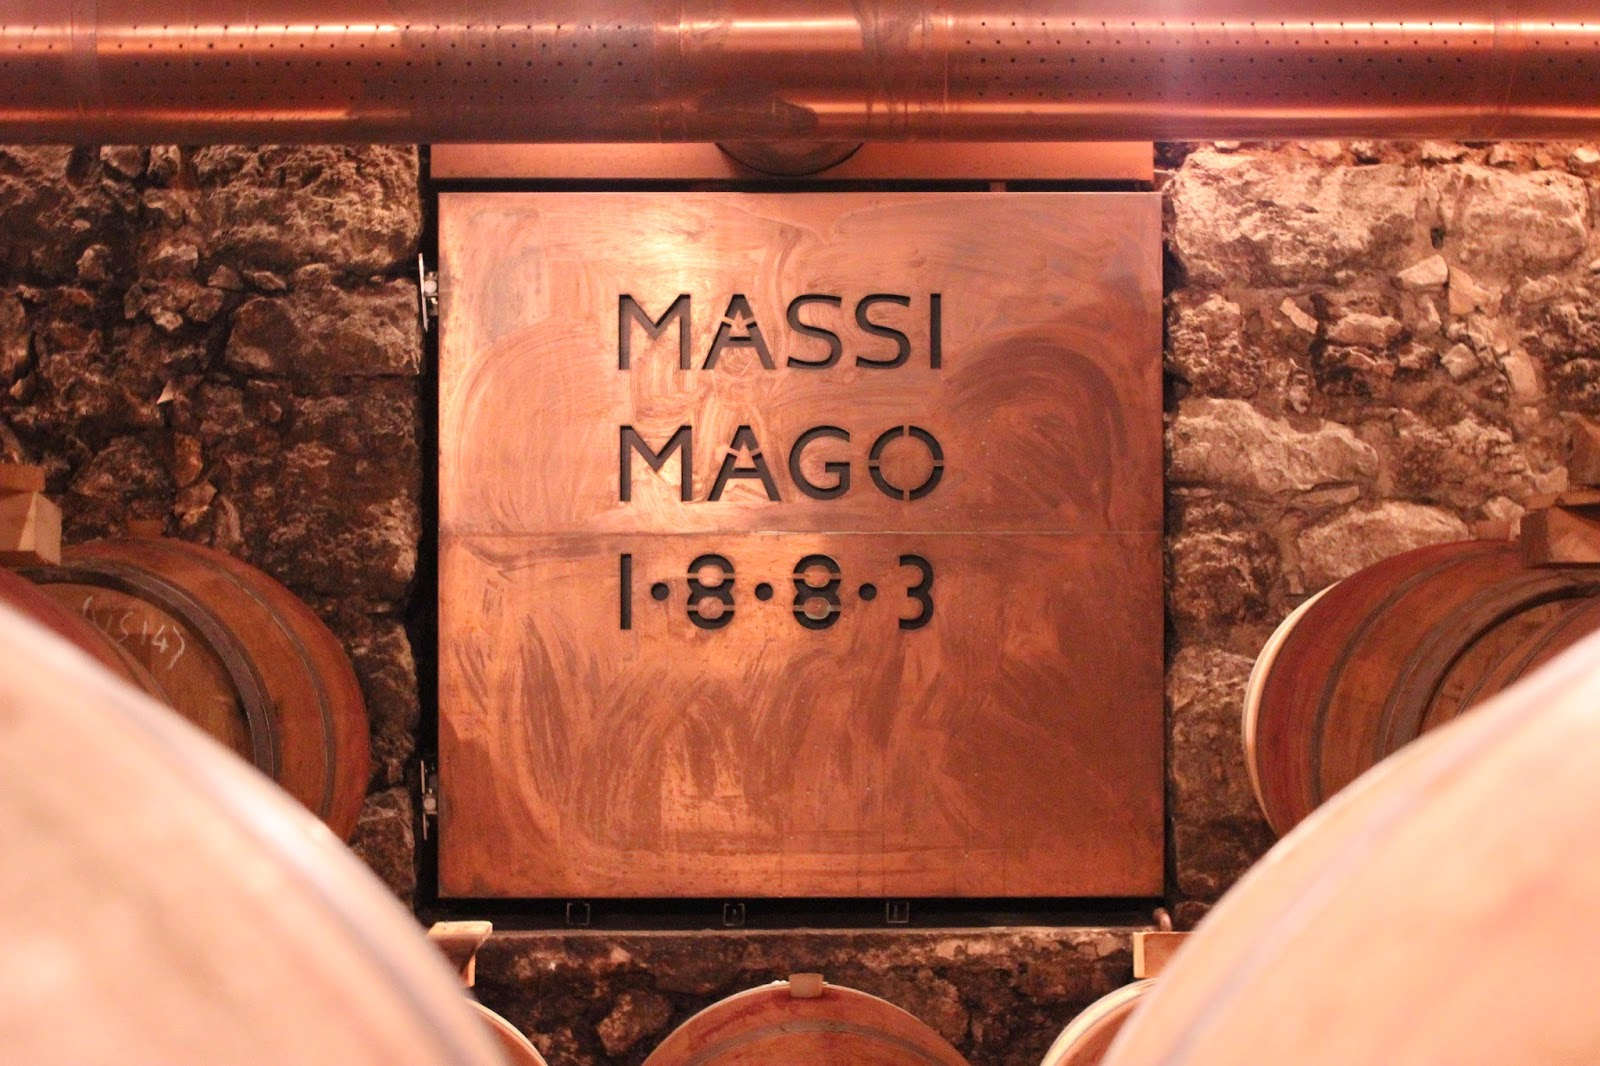 Massimago winery of Valpolicella